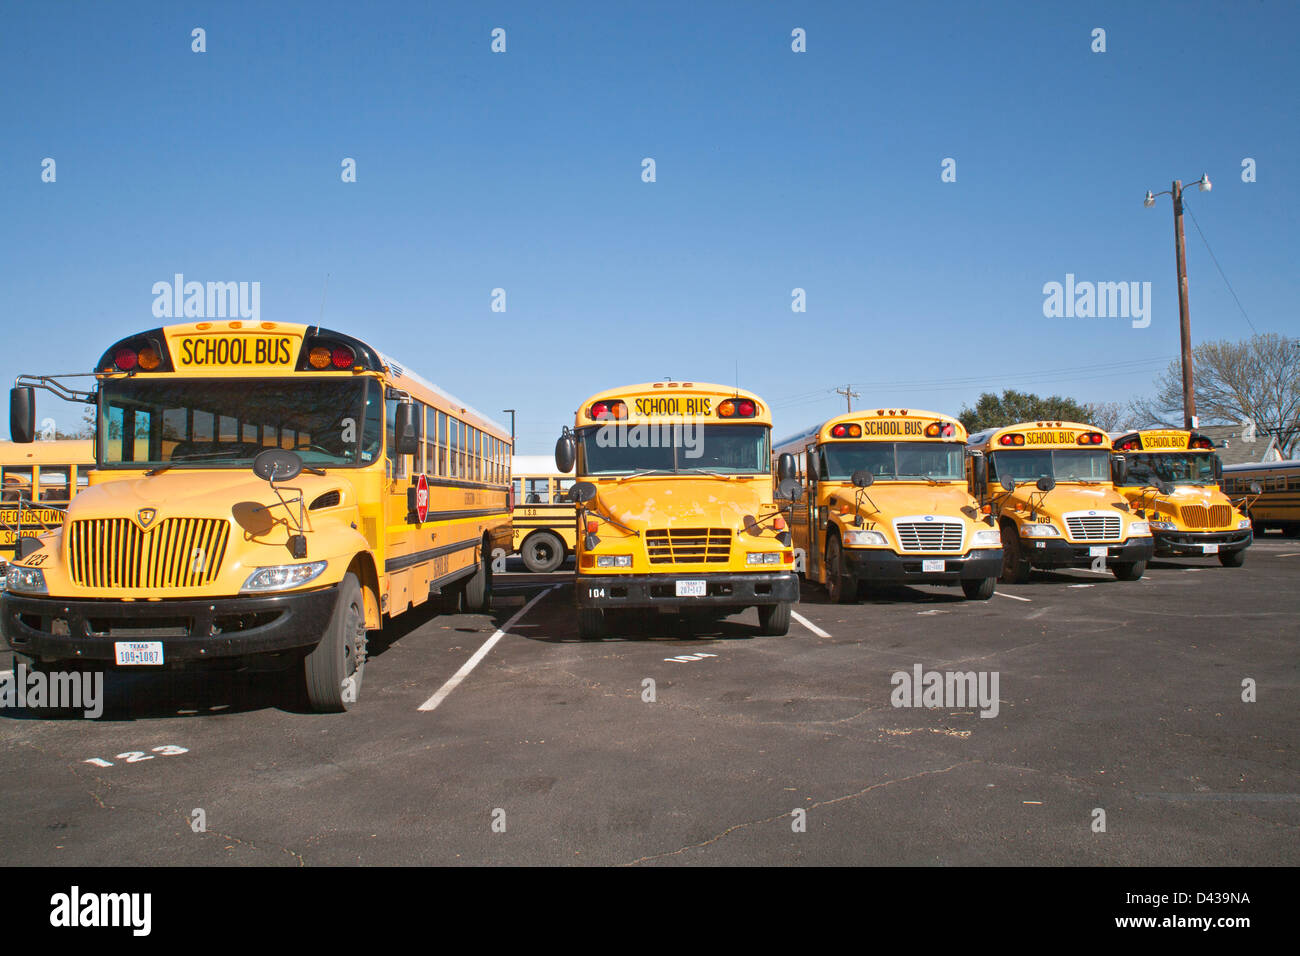 Public school buses lined up and parked in school bus parking lot Stock Photo